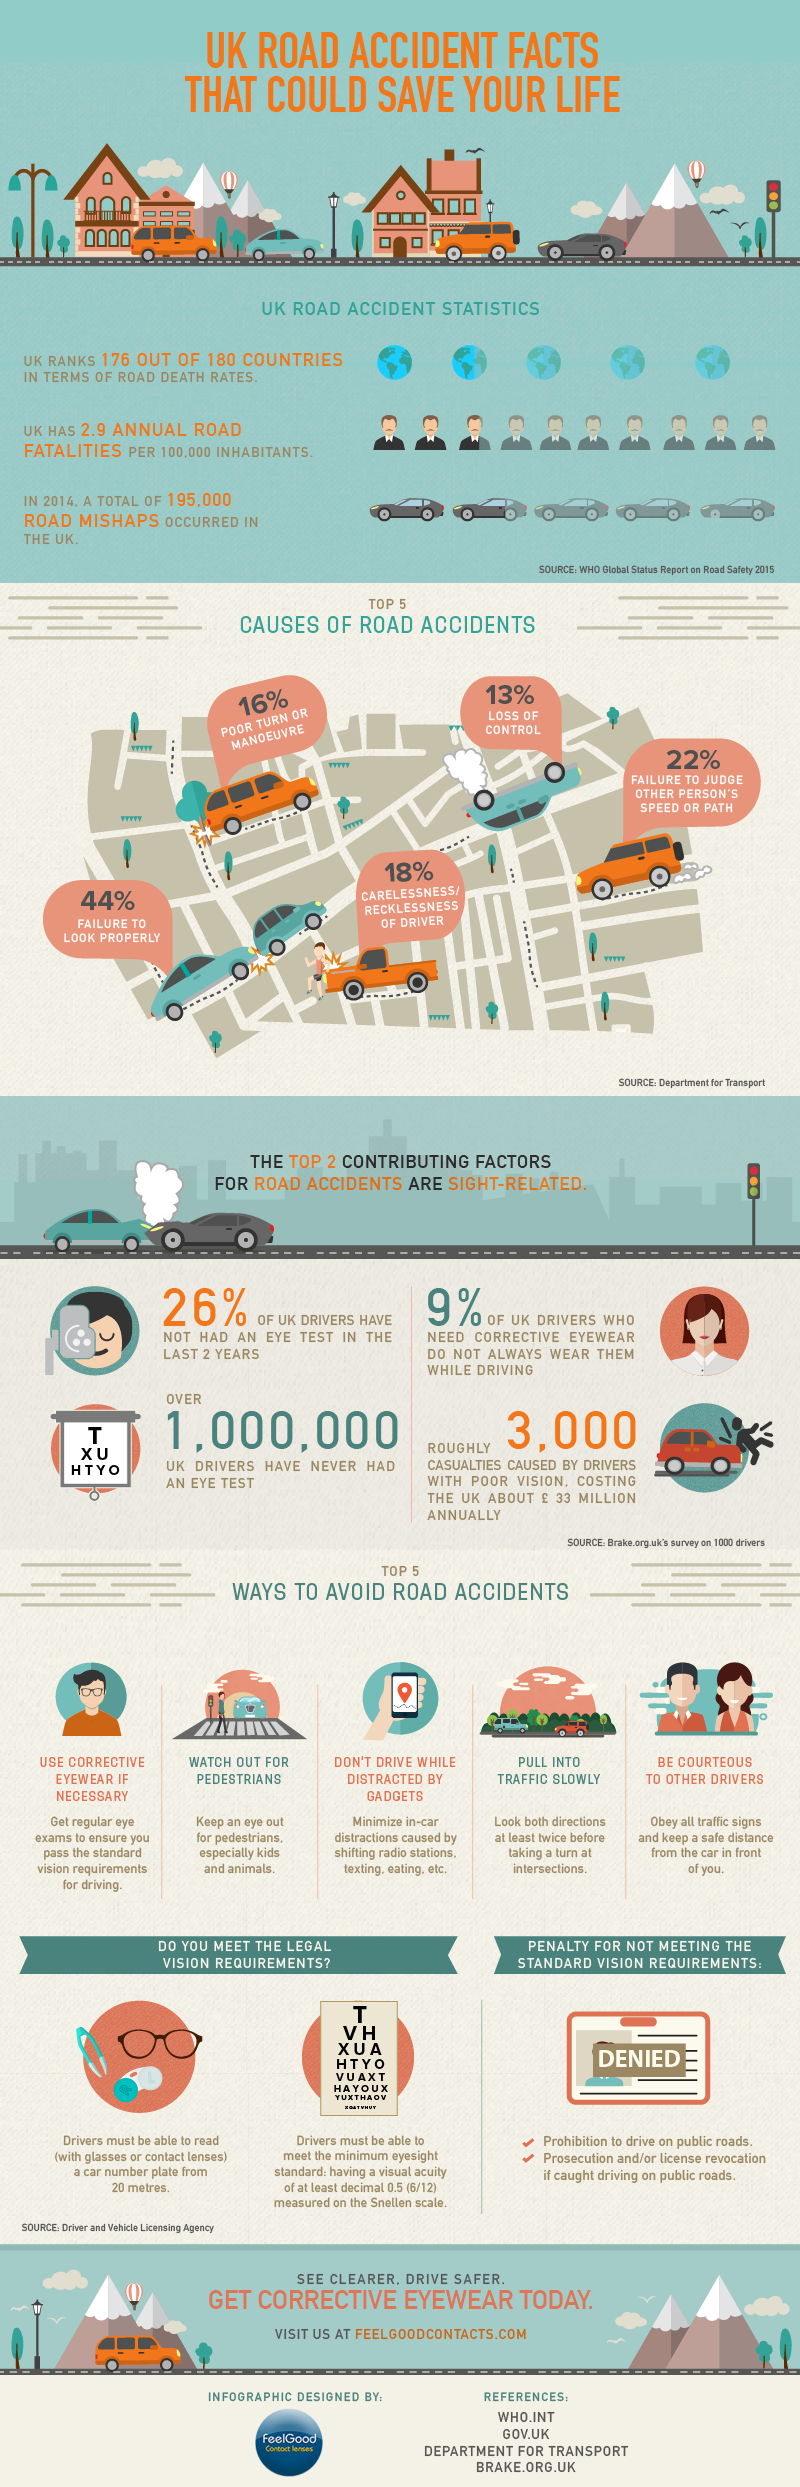 UK Road Accident Facts That Could Save Your Life #infographic